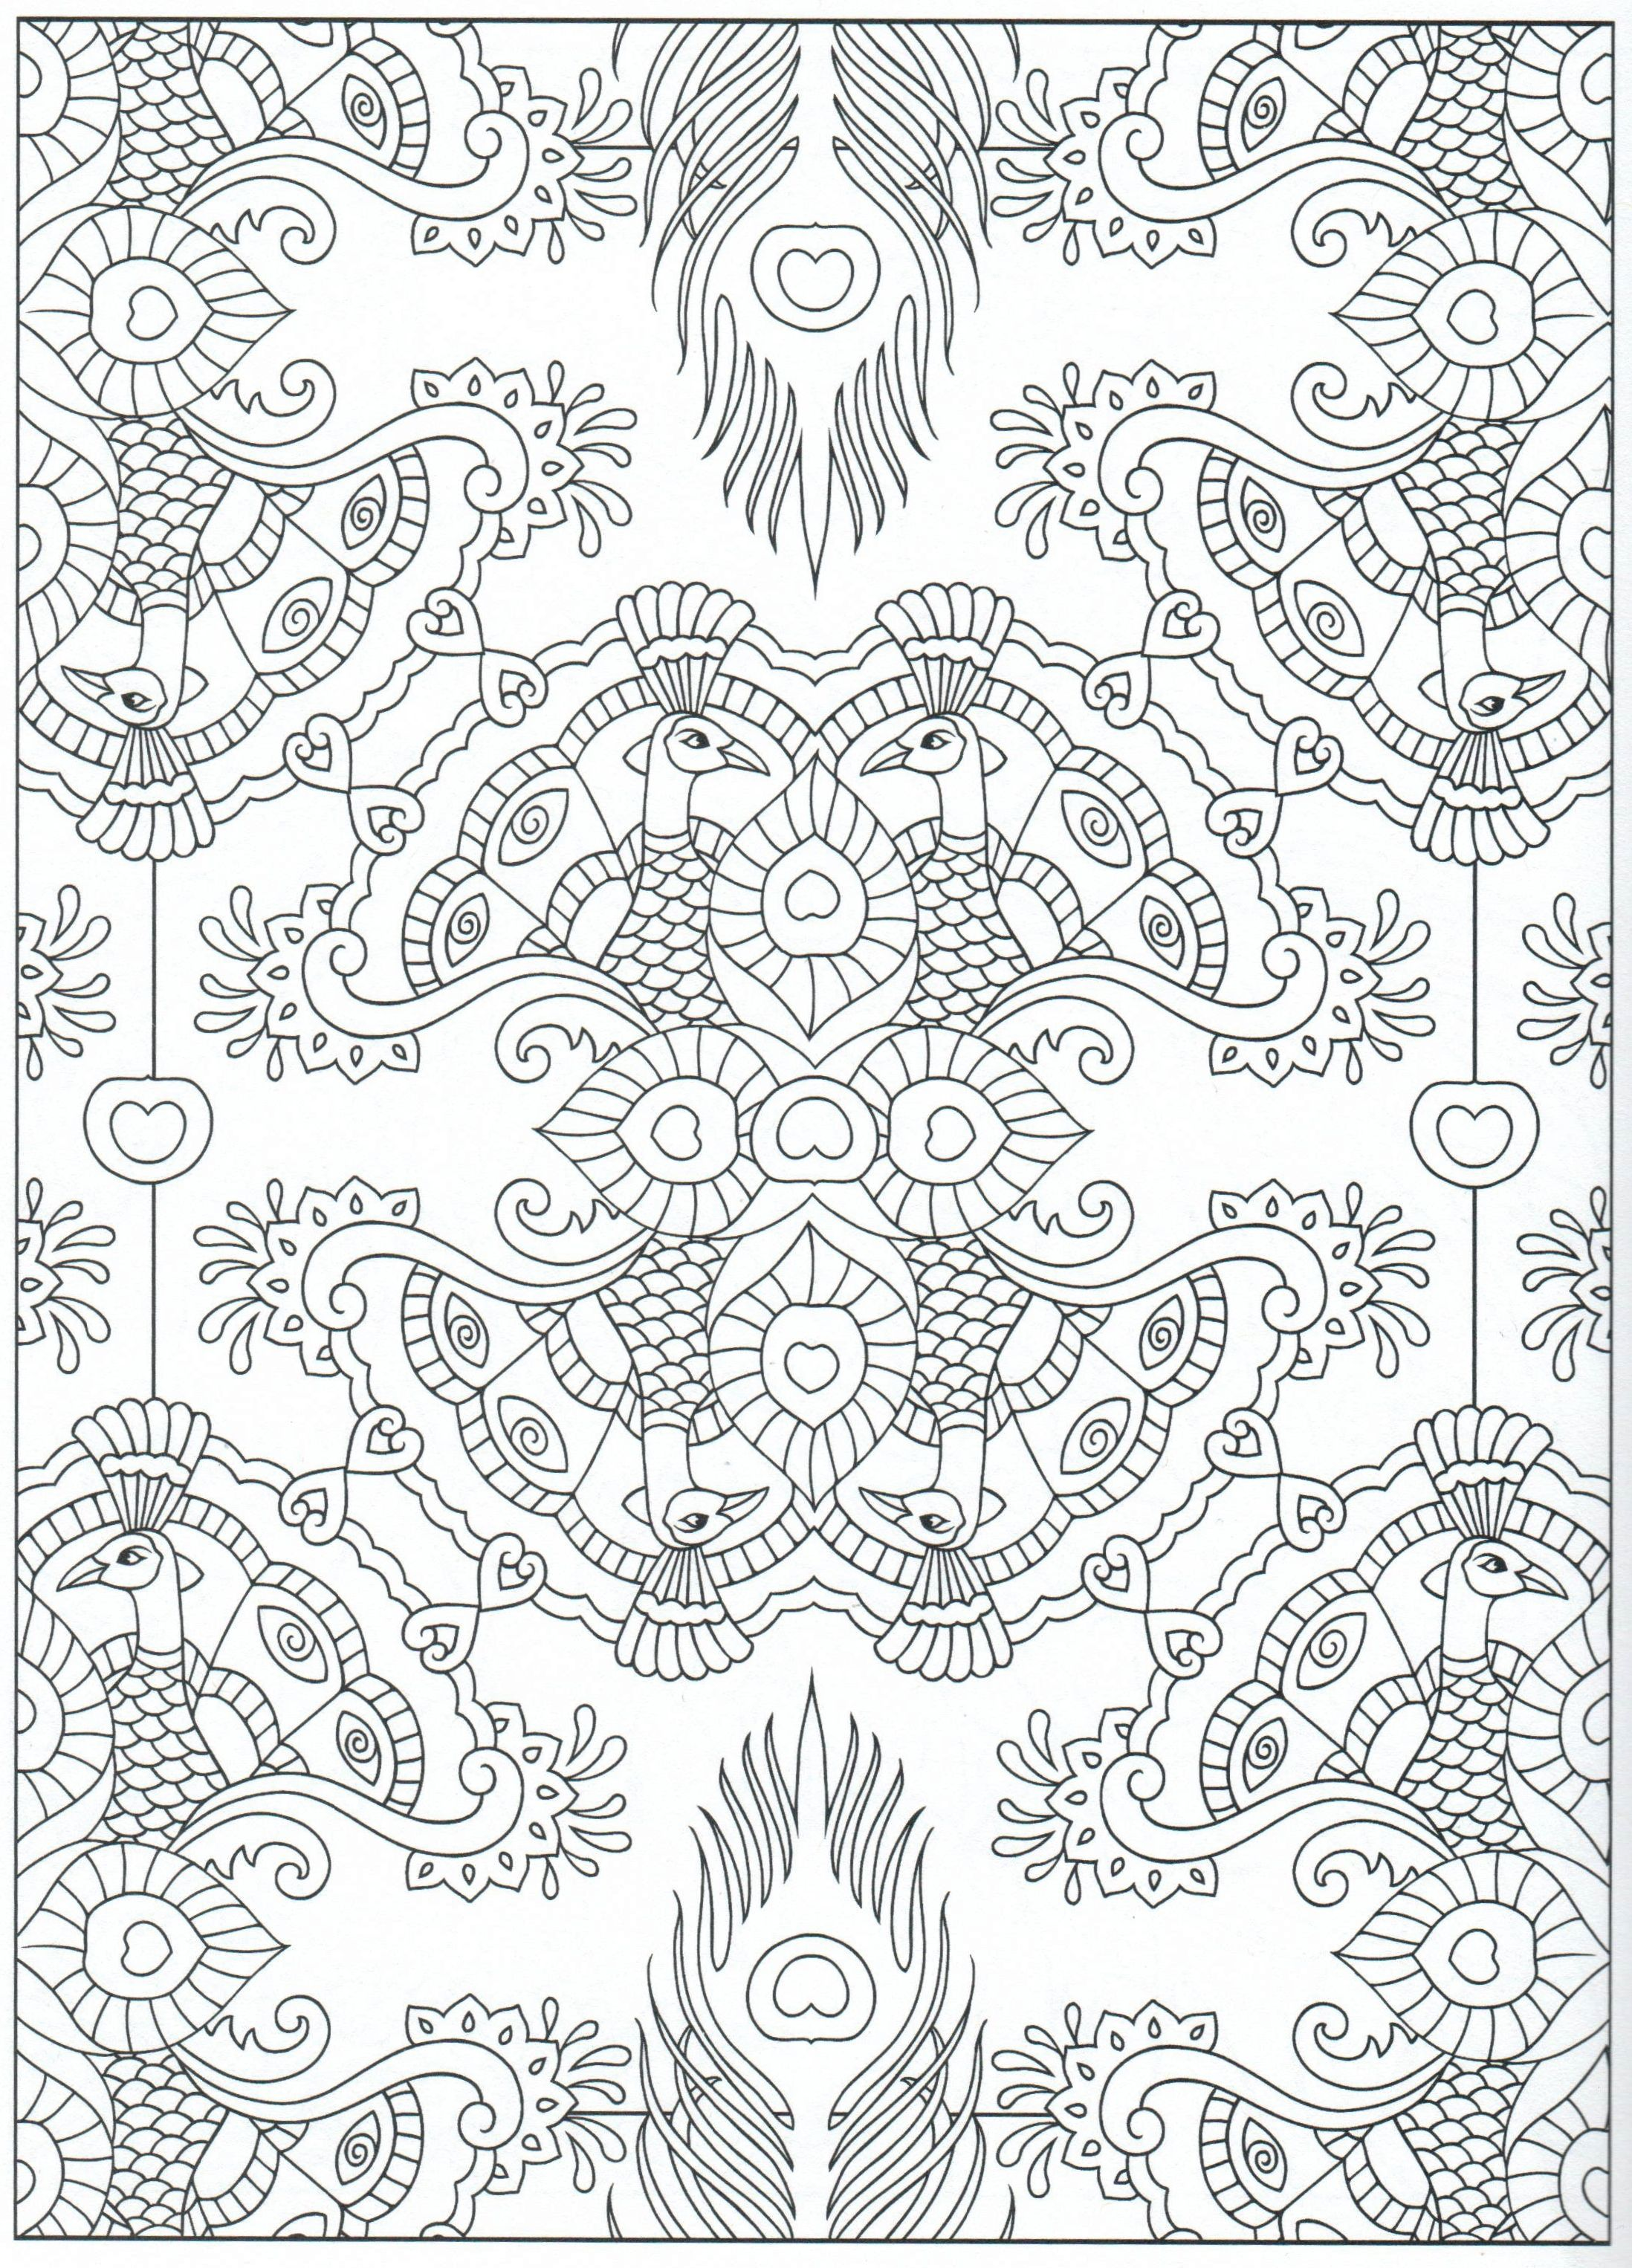 Peacock coloring page, for adults 9/31 | Colouring pages for Kids ...